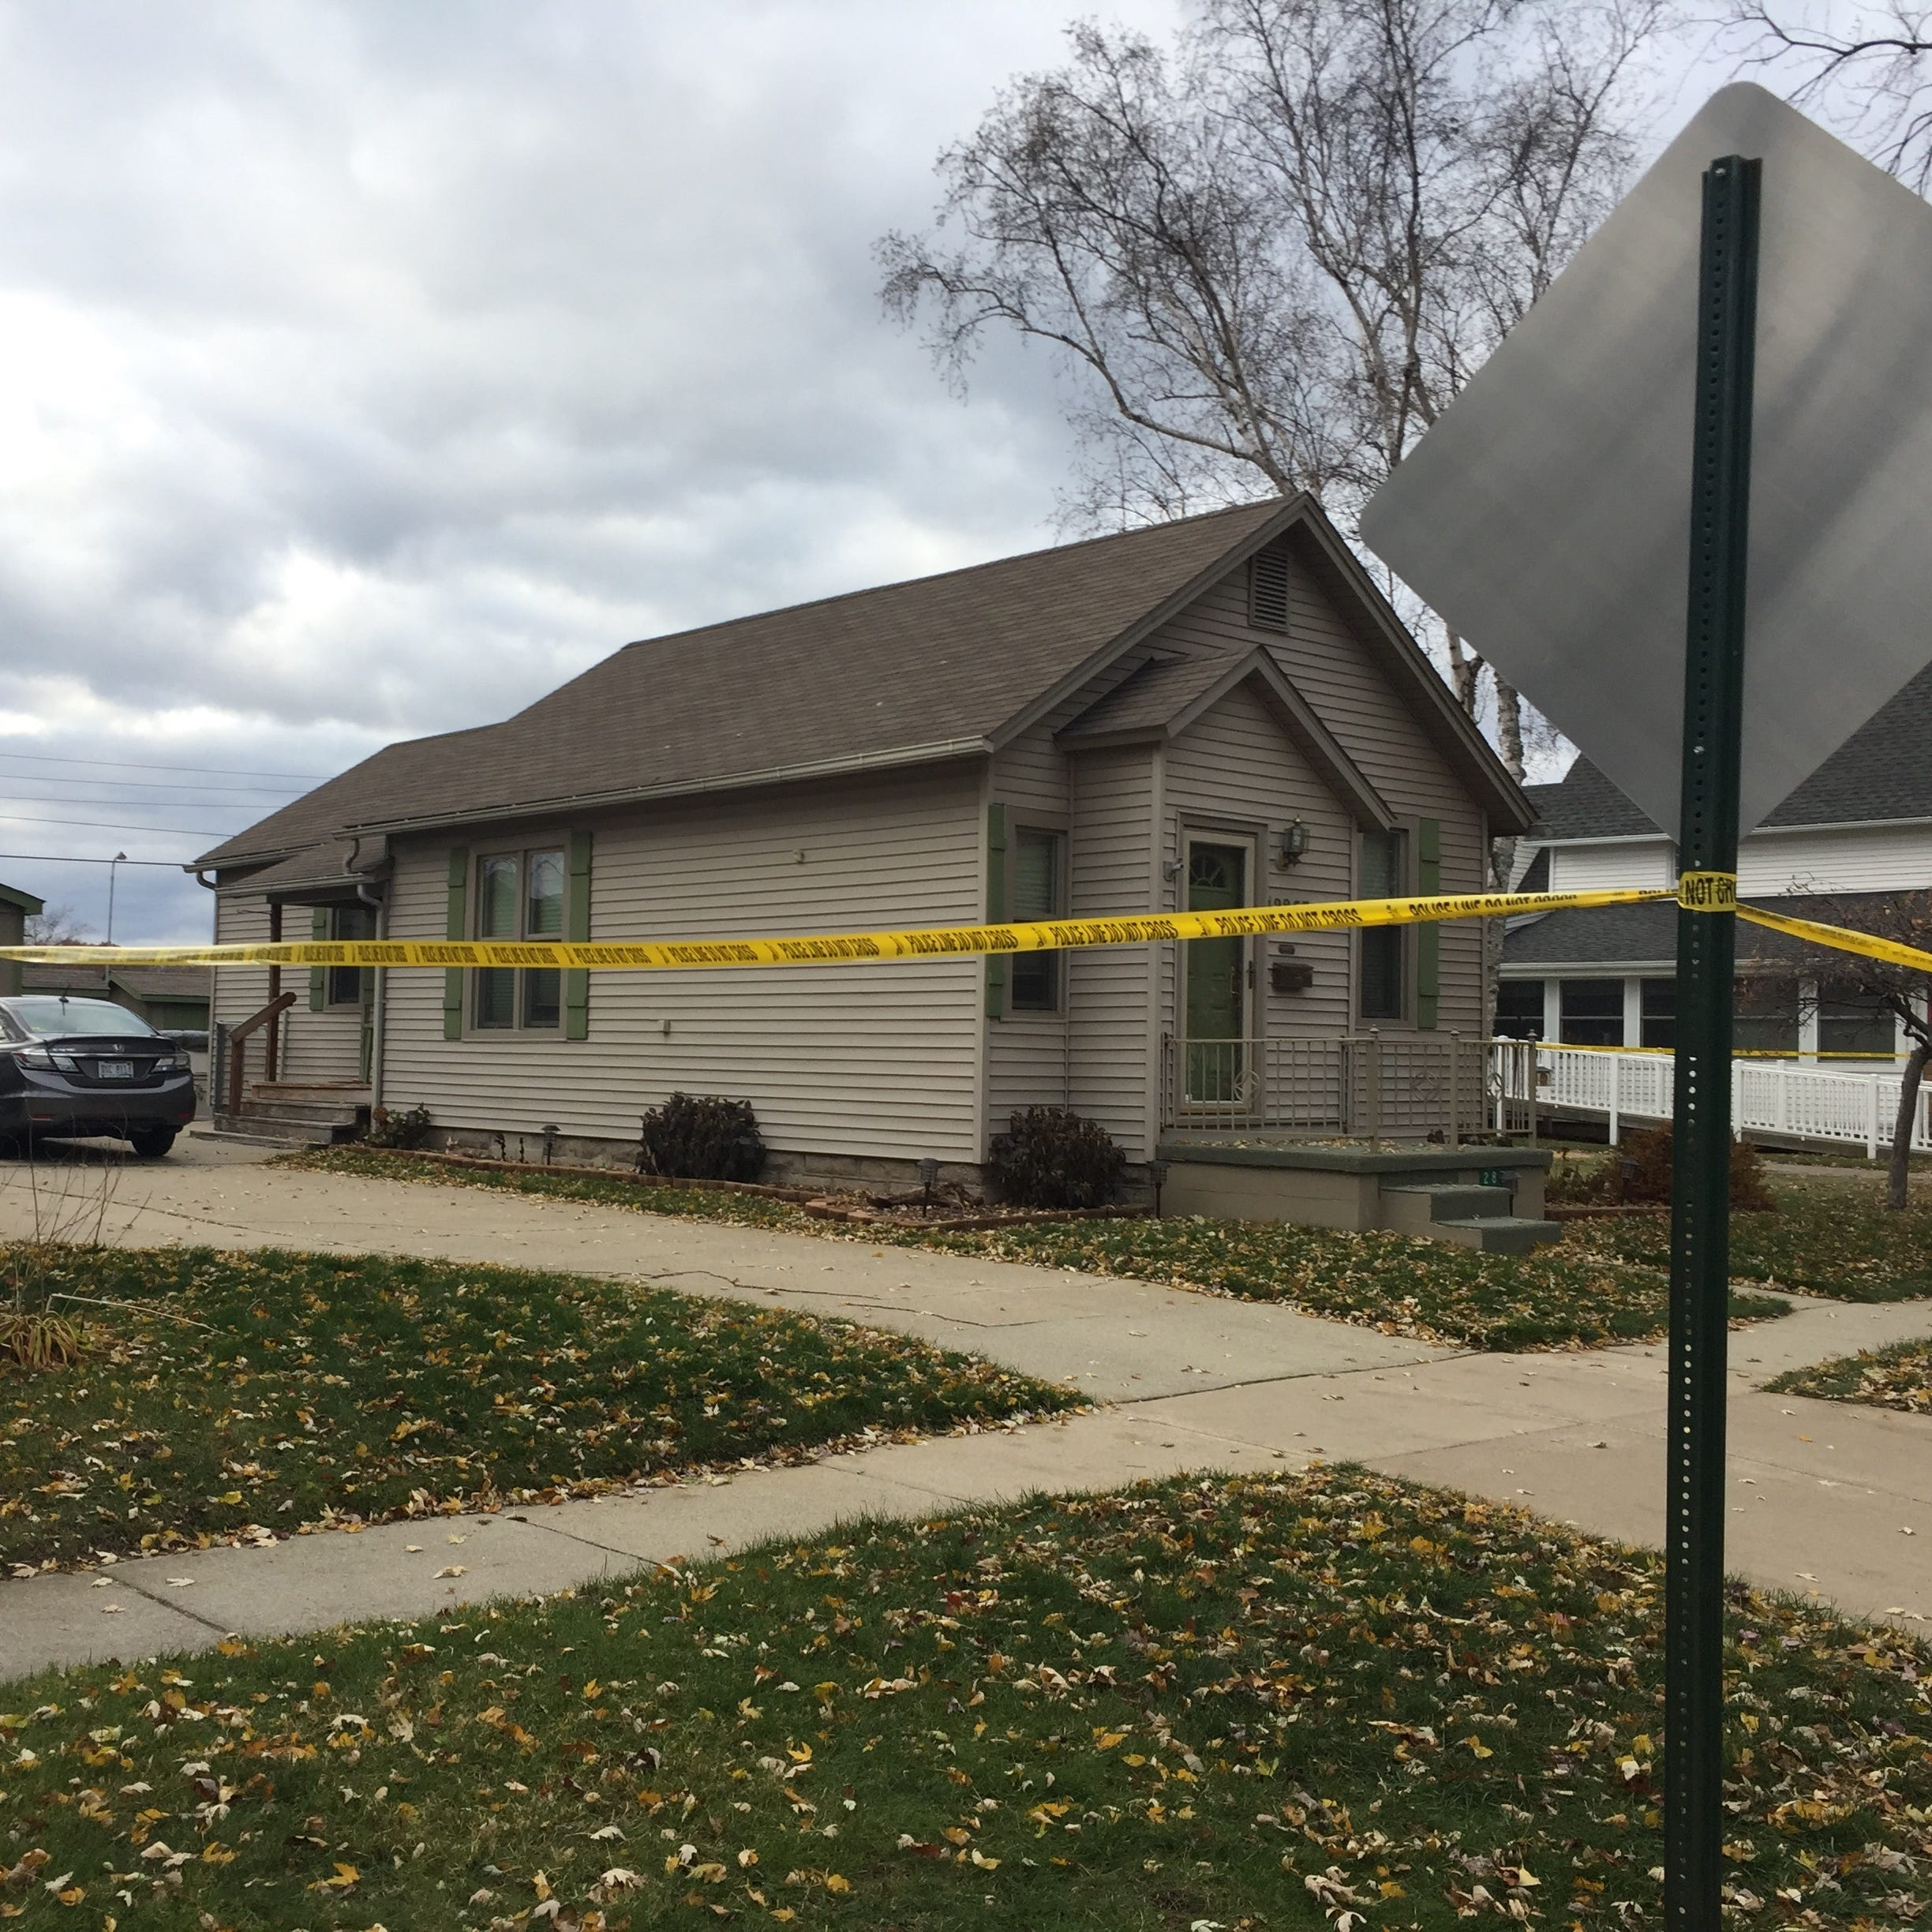 Police investigating possible murder suicide